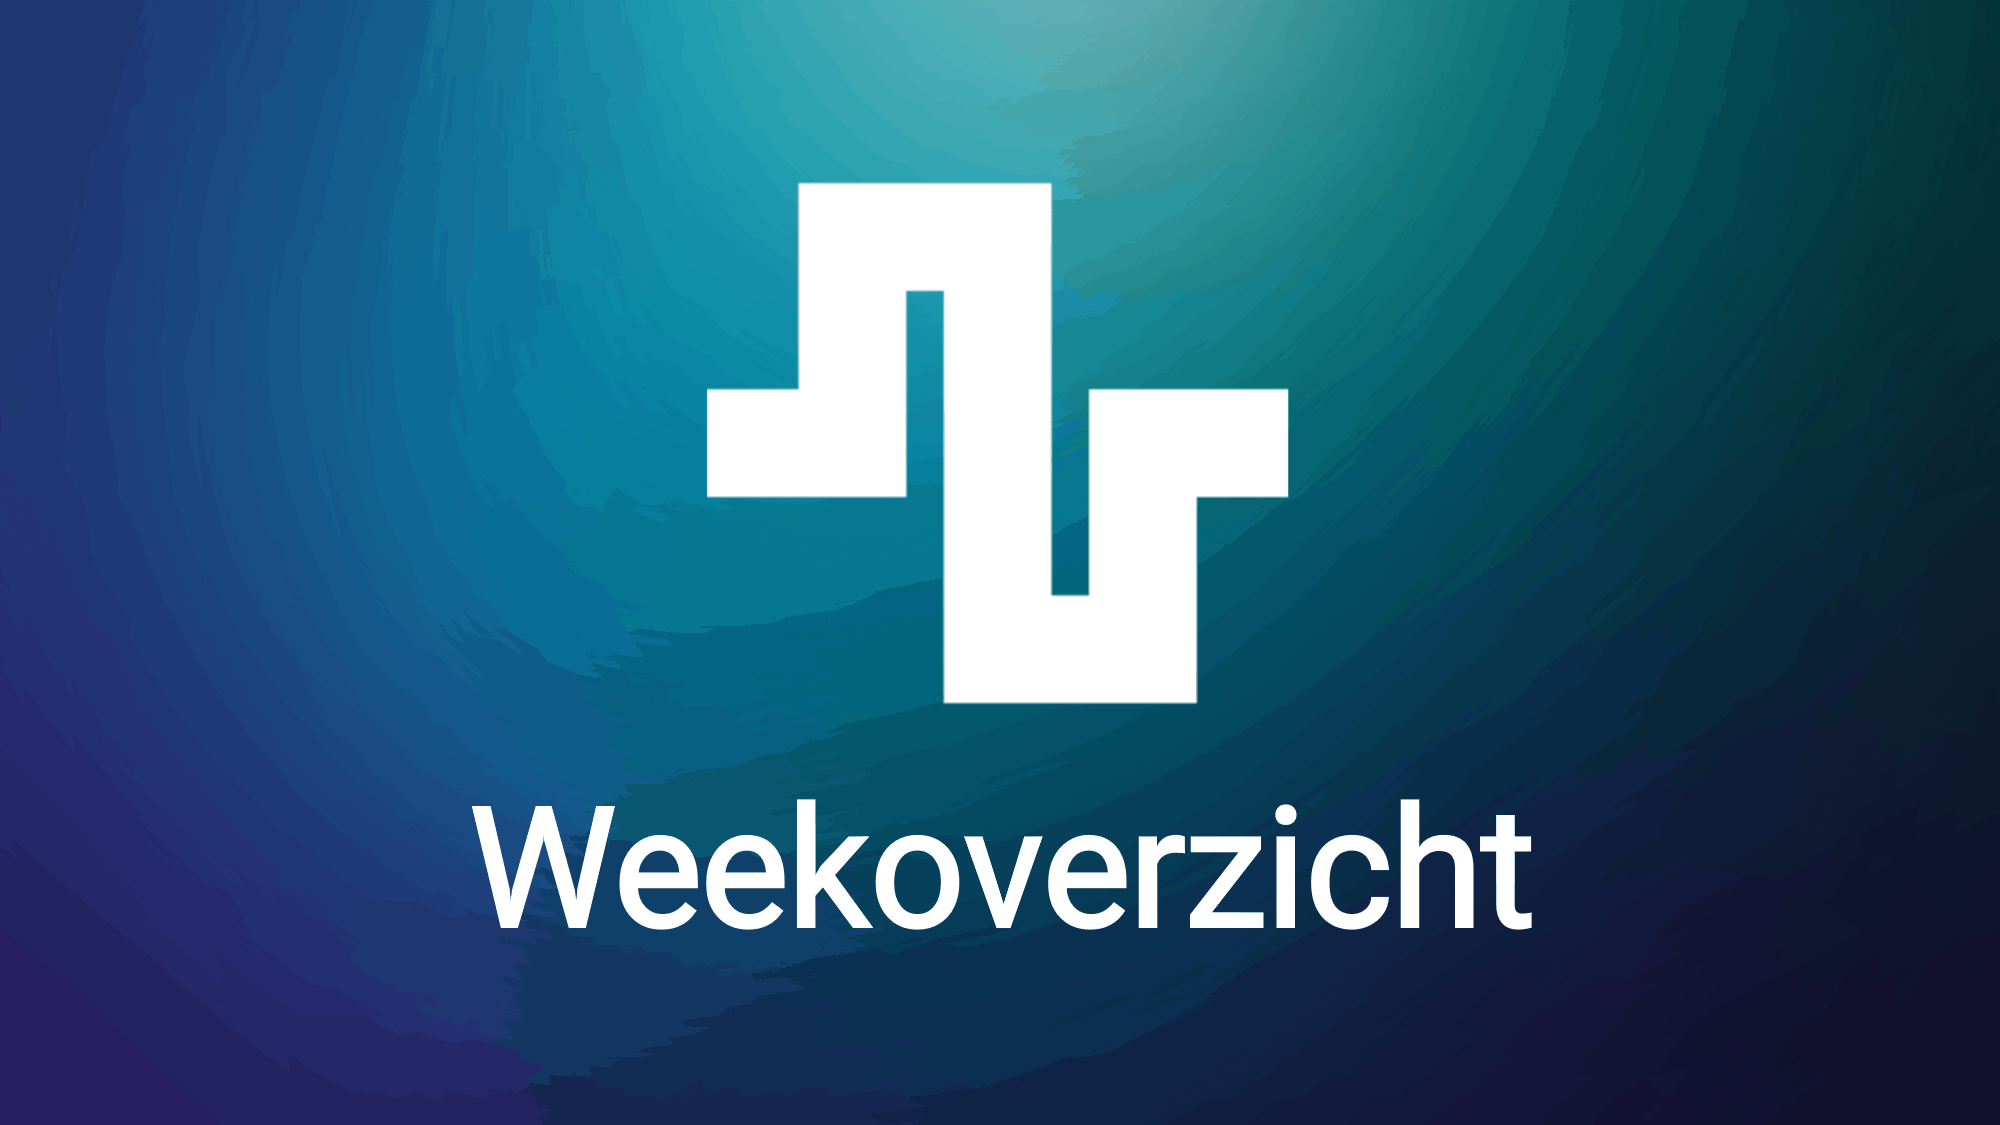 TechPulse weekoverzicht logo